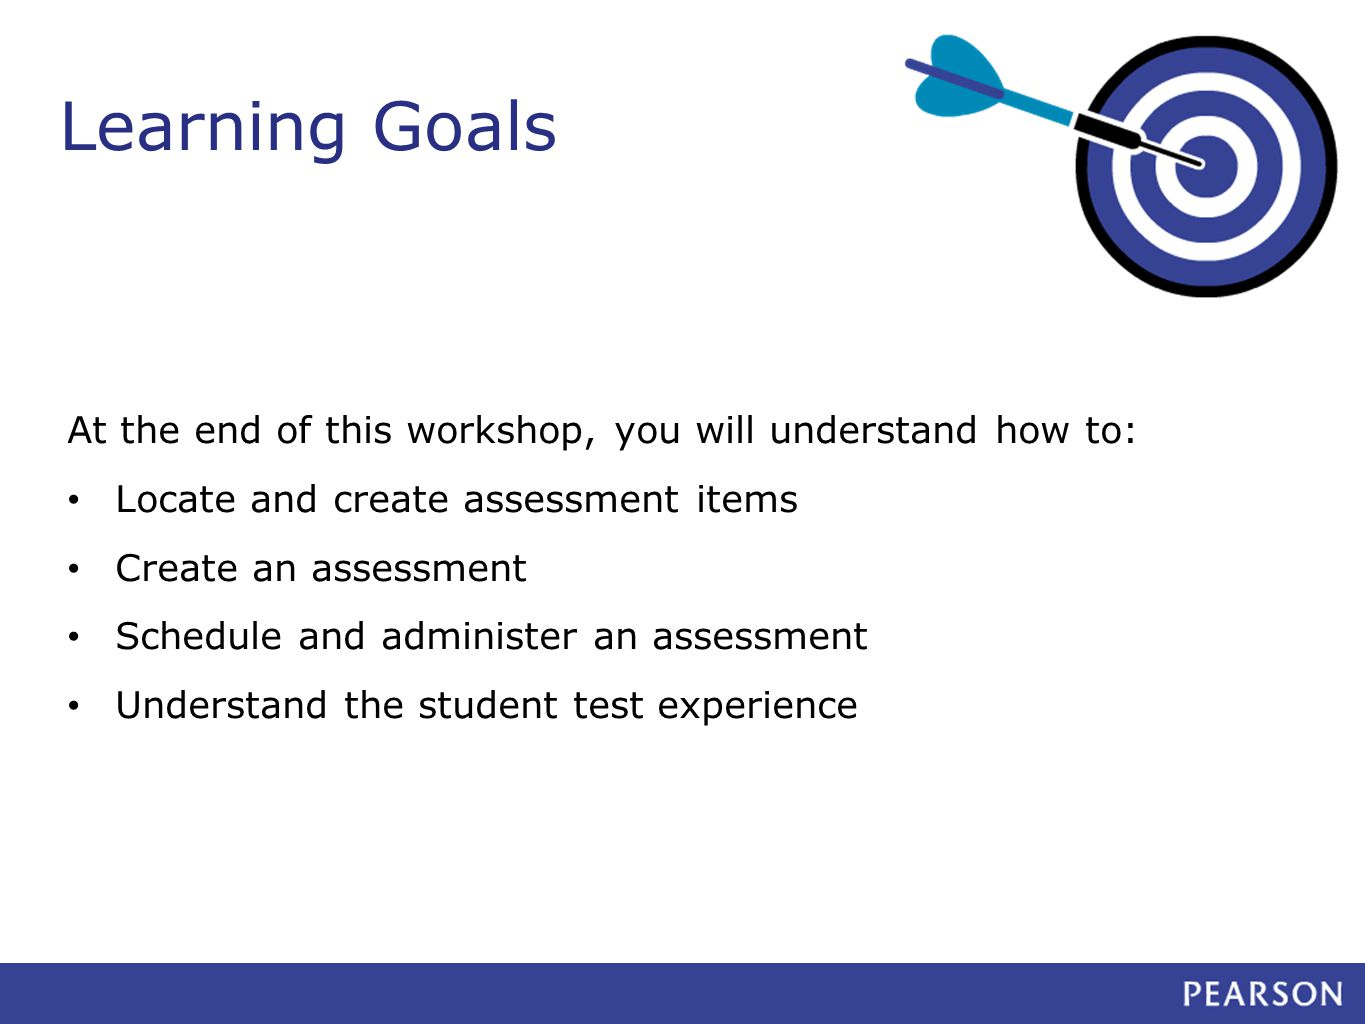 Learning Goals At the end of this workshop, you will understand how to: Locate and create assessment items Create an assessment Schedule and administer an assessment Understand the student test experience